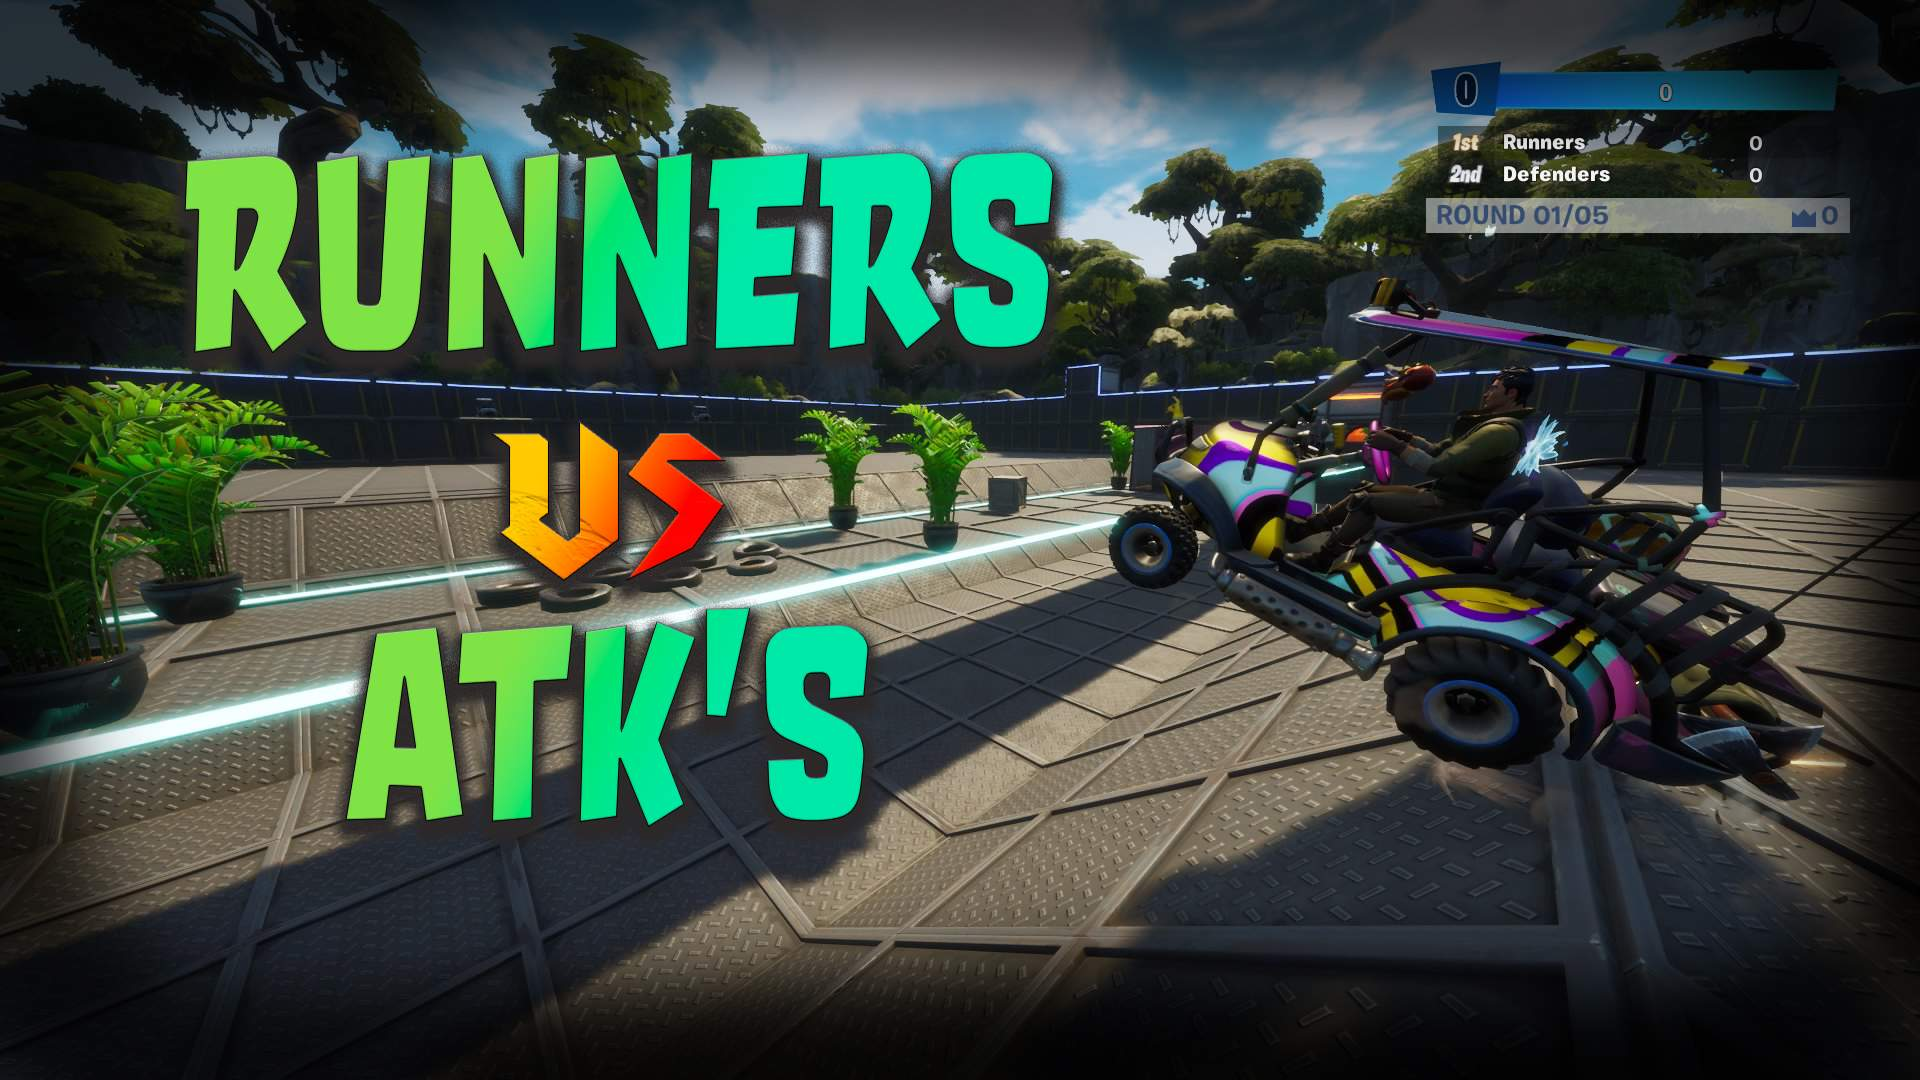 RUNNERS VS ATK